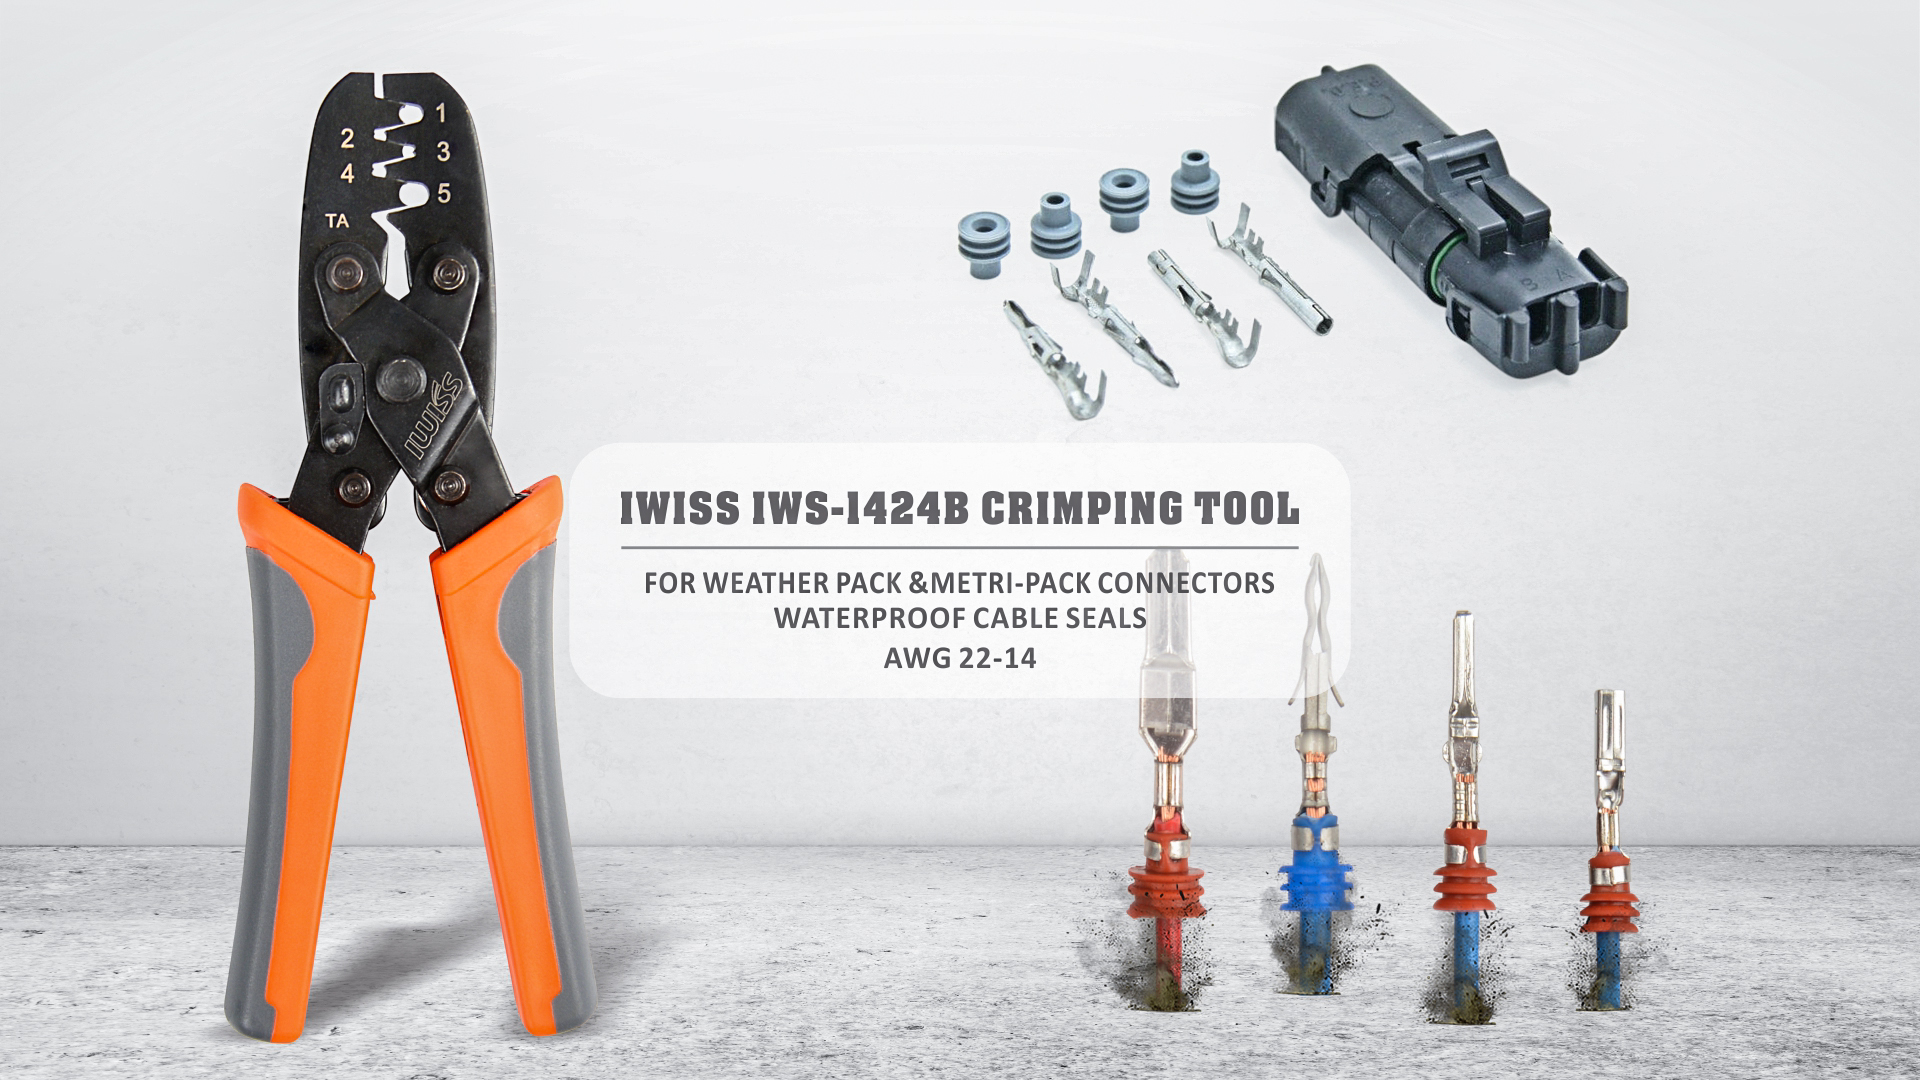 IWISS Weather Pack Terminal Crimping Tool Wire Crimper for Delphi Metri-Pack 1